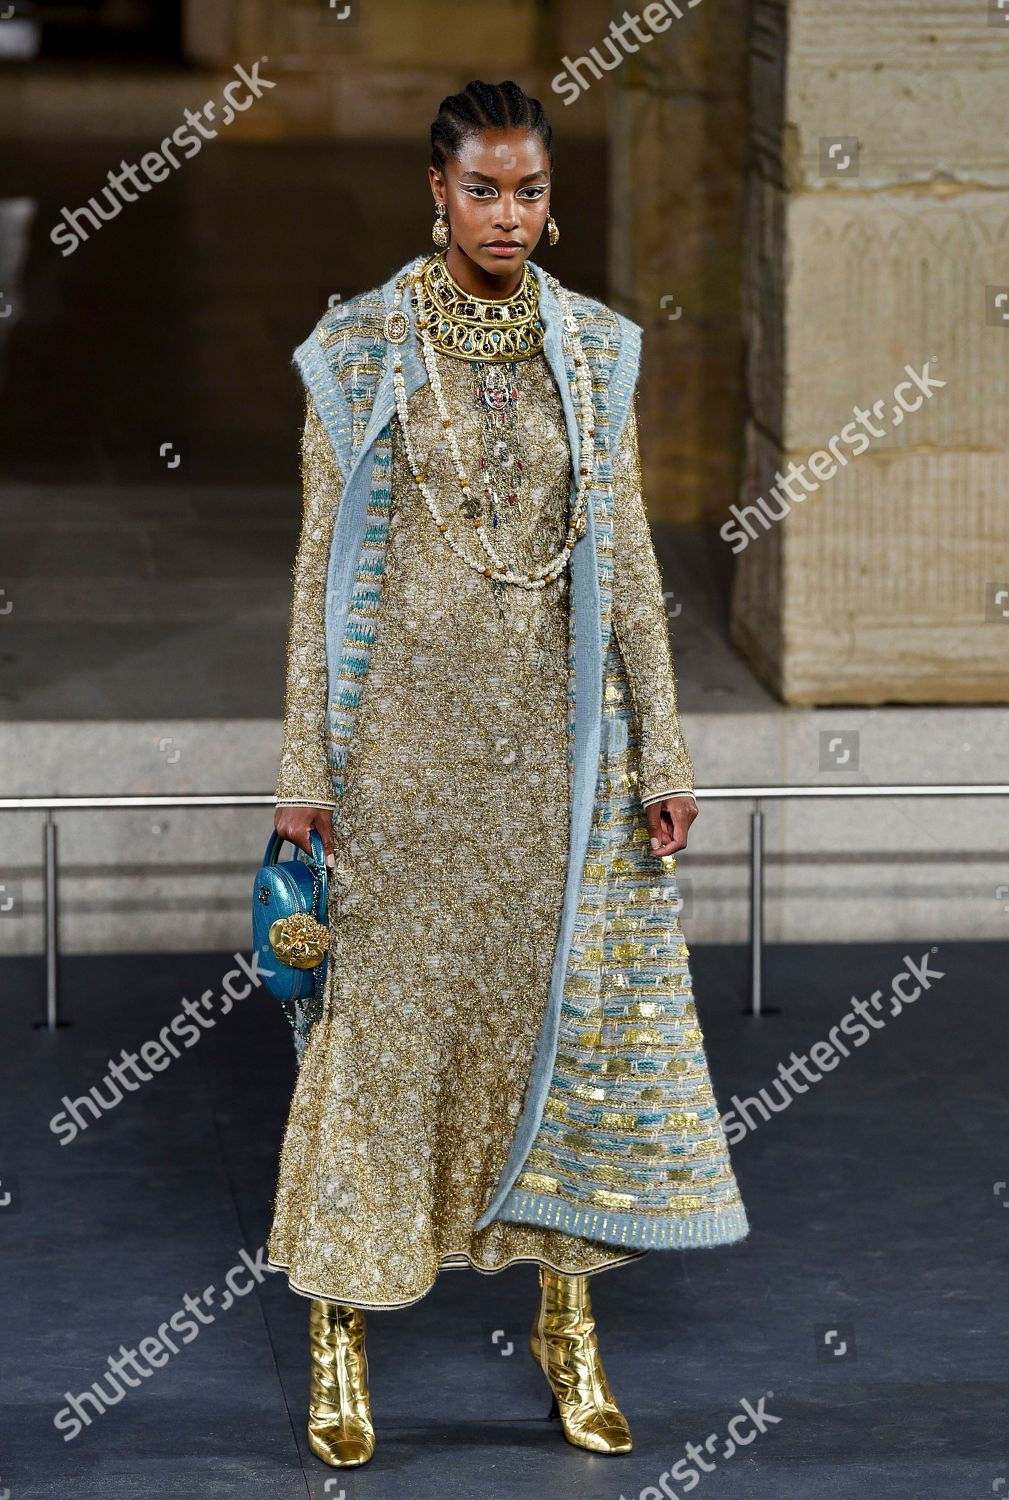 6d7285585 Chanel Metiers D'Art 2018/19 Show - Runway, New York, USA Stock Image by  Evan Agostini for editorial use, Dec 4, 2018